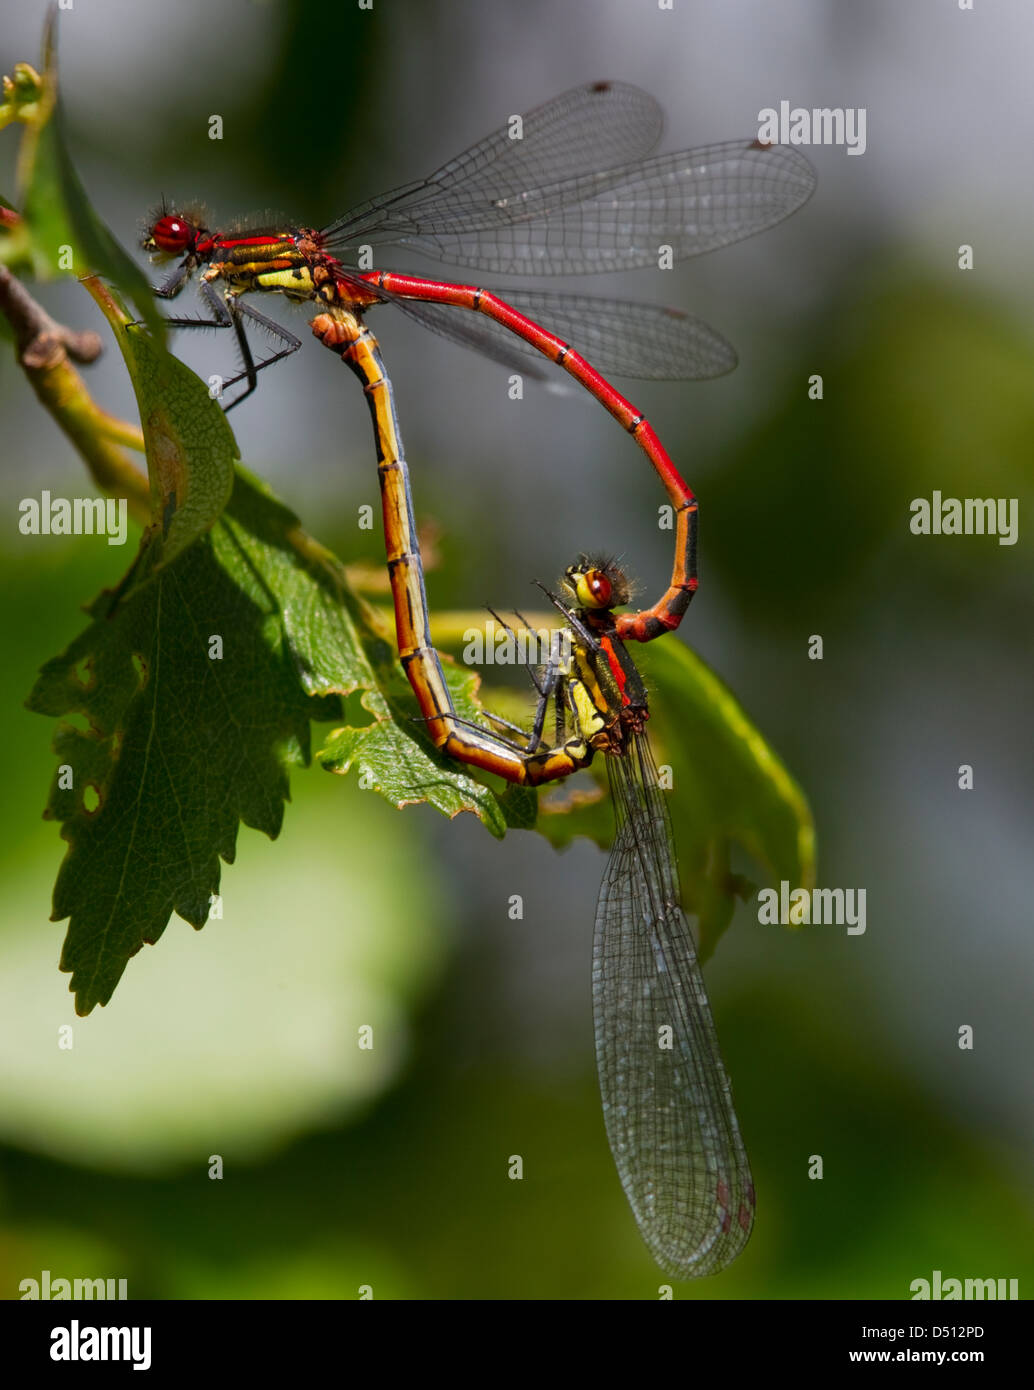 Pyrrhosoma nymphula, Large Red Damselfly  mating forming a heart shape resting on a leaf - Stock Image